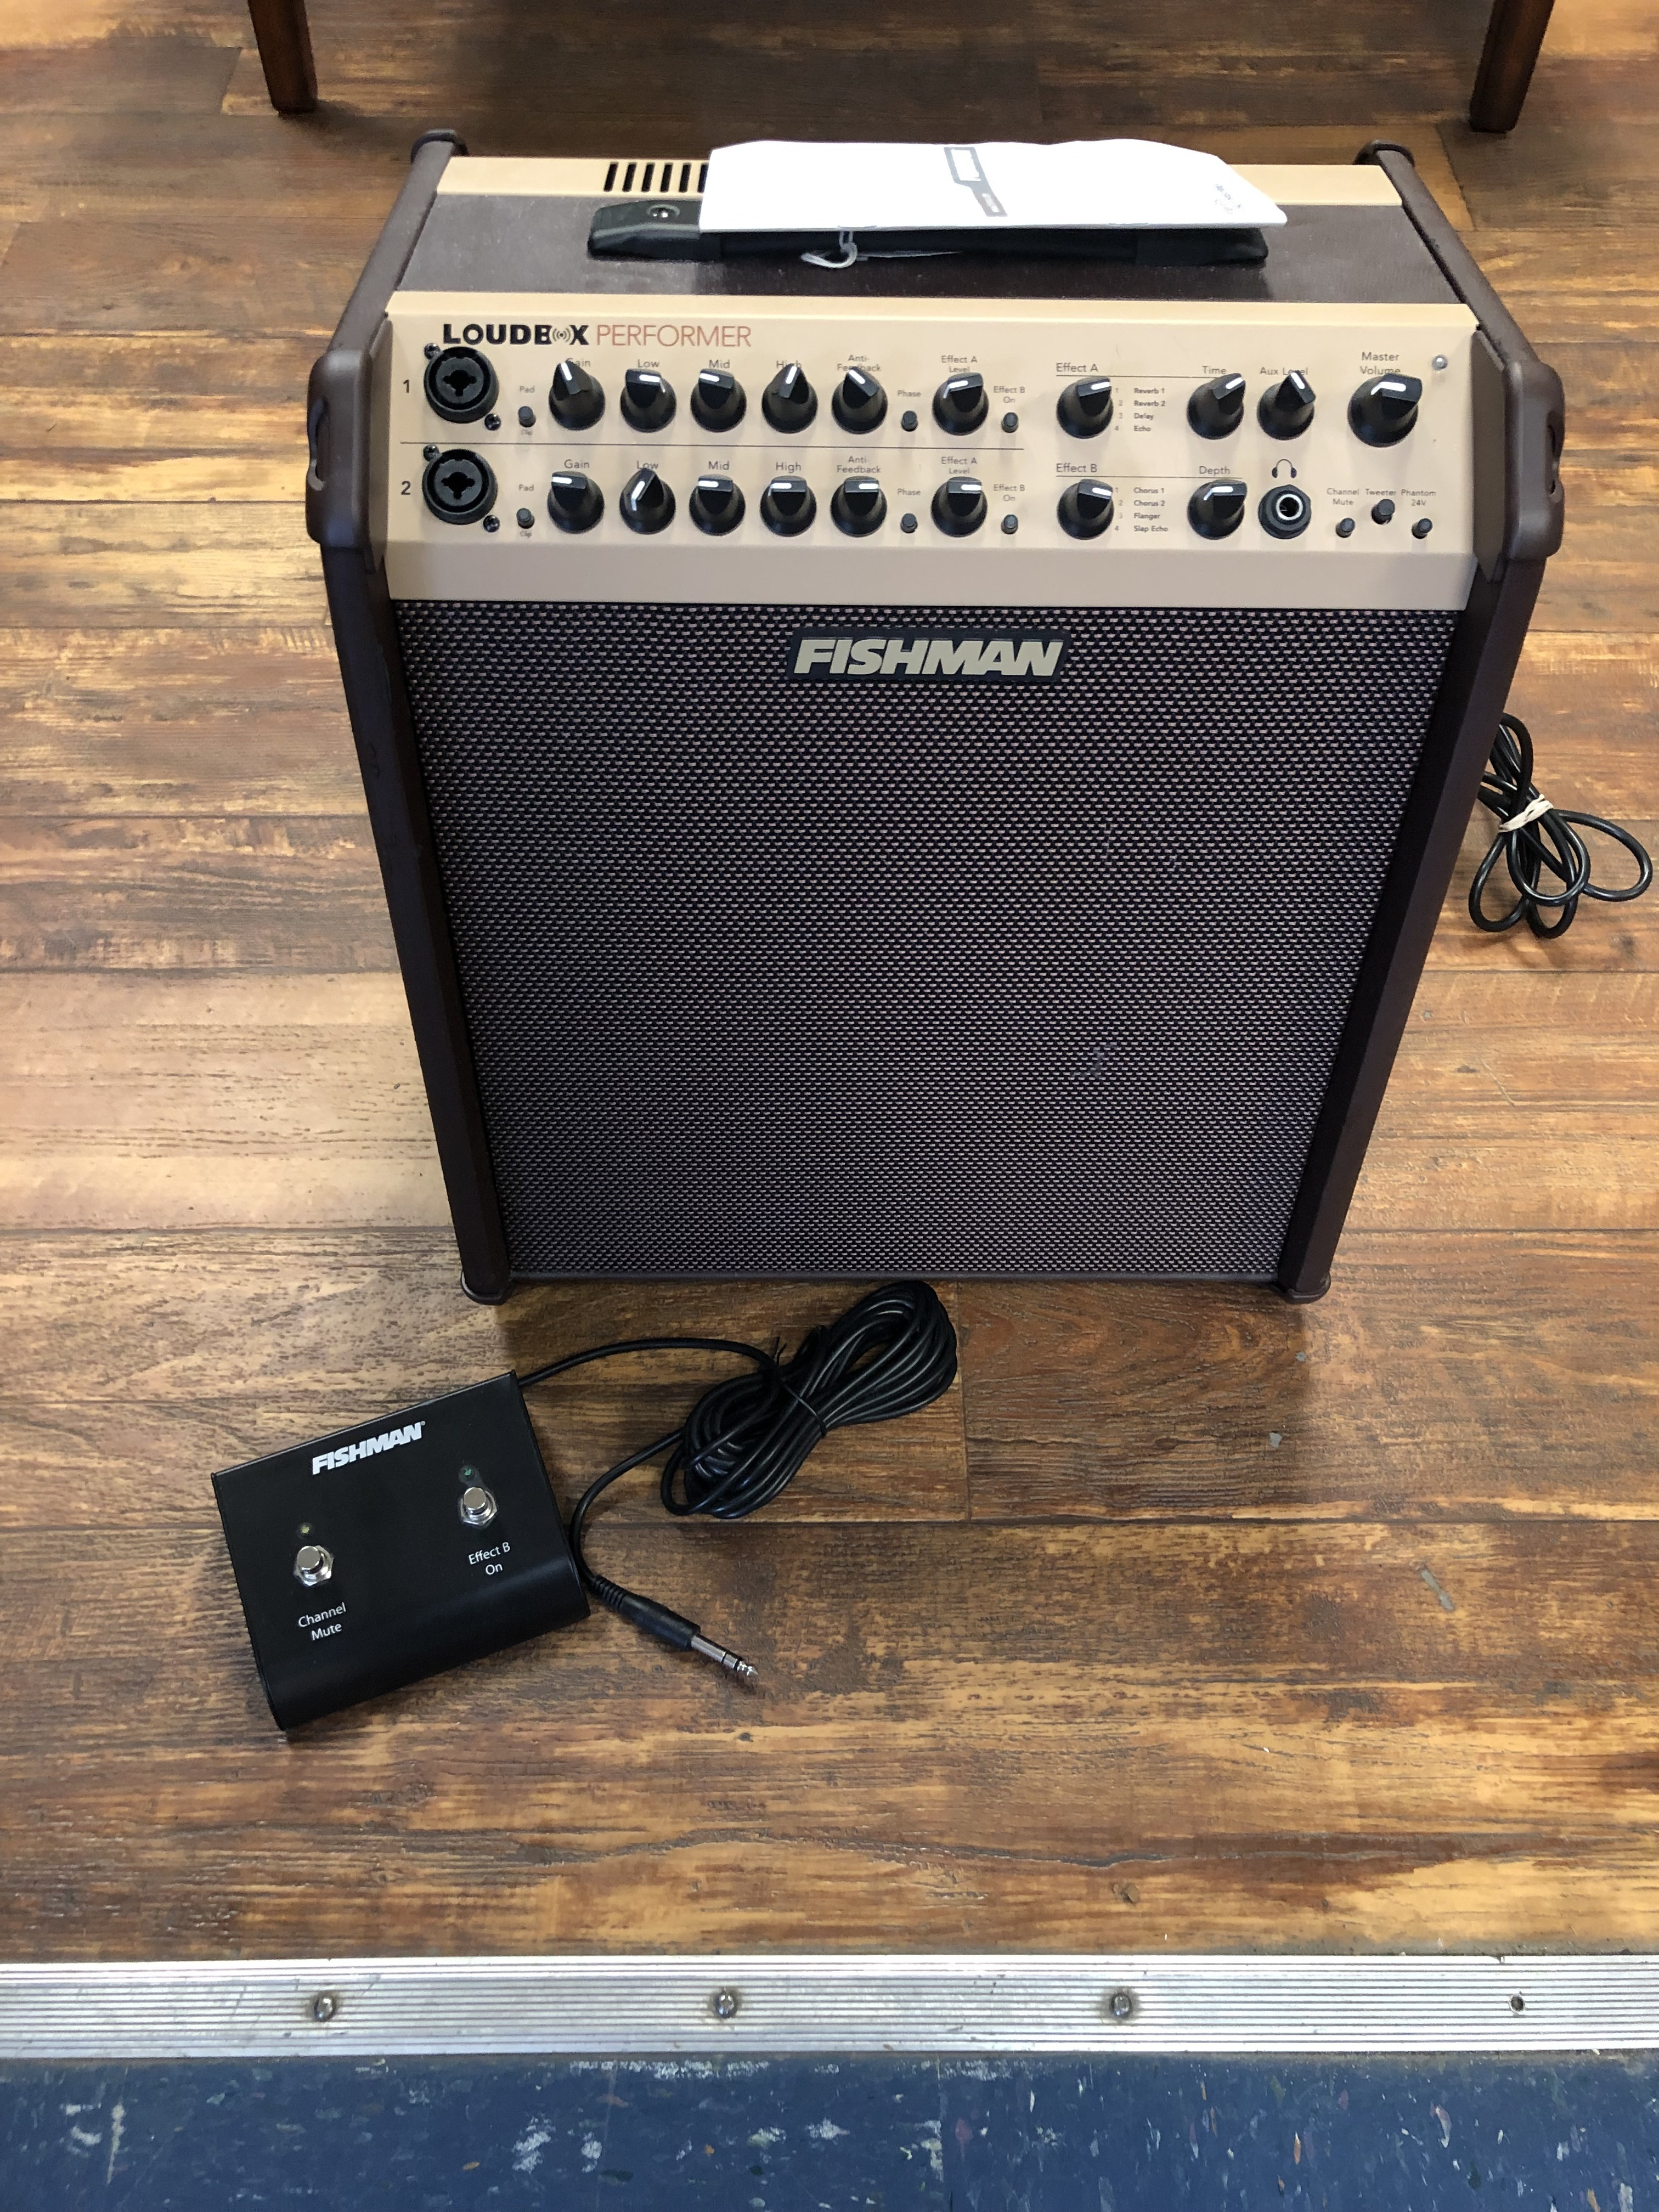 FISHMAN ACOUSTIC GUITAR AMP WITH FOOTSWITCH AND AMP COVER - LOUDBOX PERFORMER